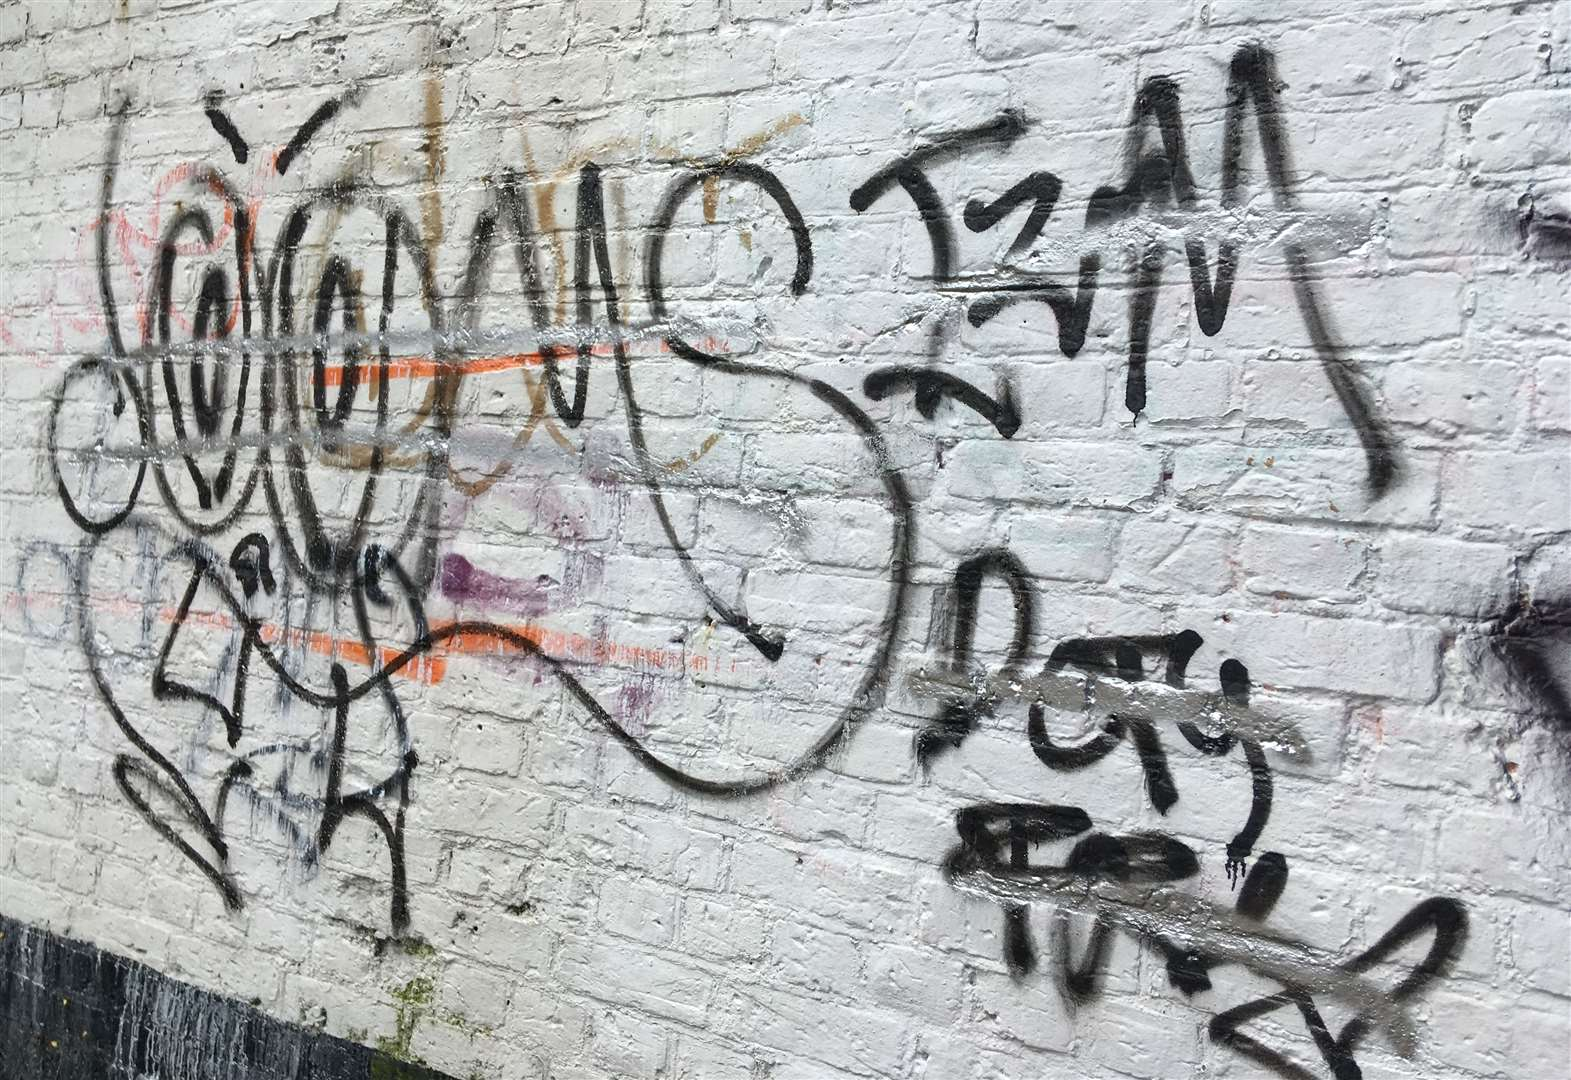 Graffiti victims could be prosecuted